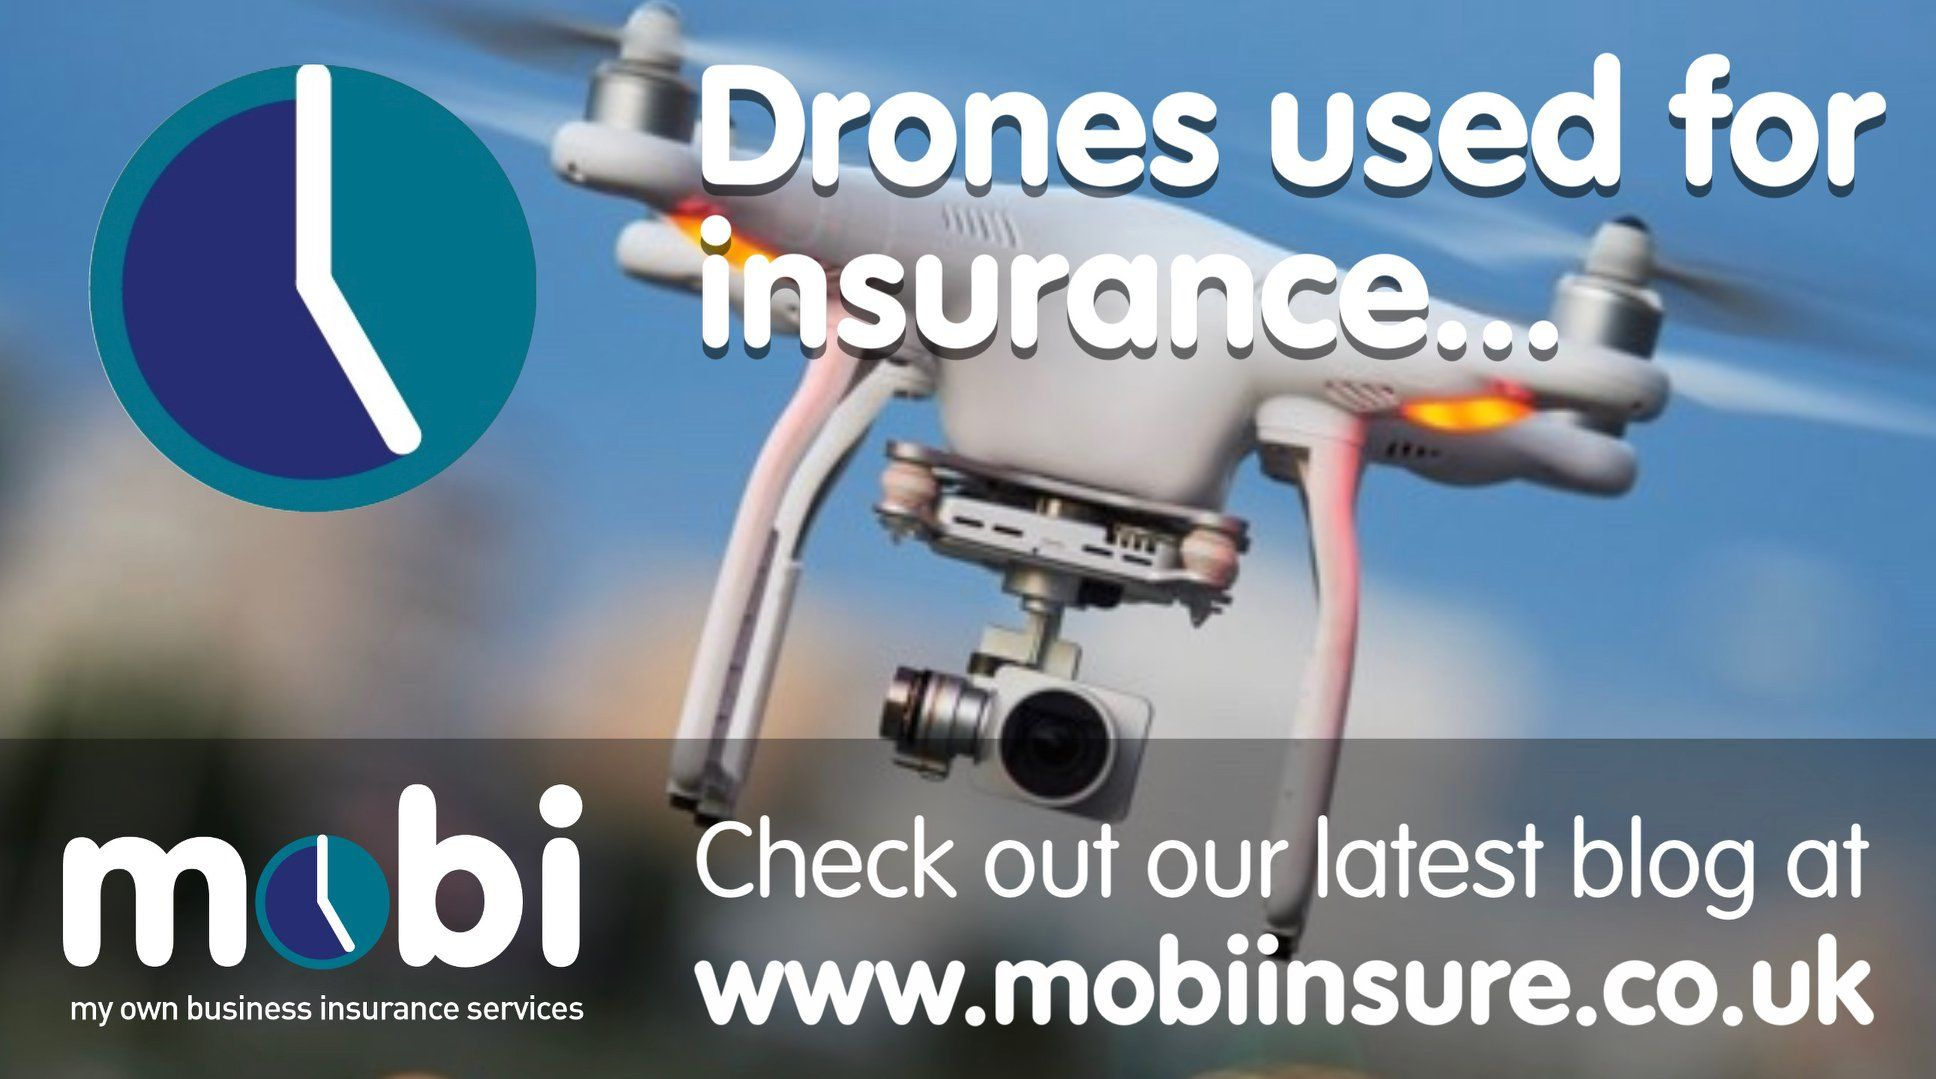 Drone insurance, best available in 2020 Insurance